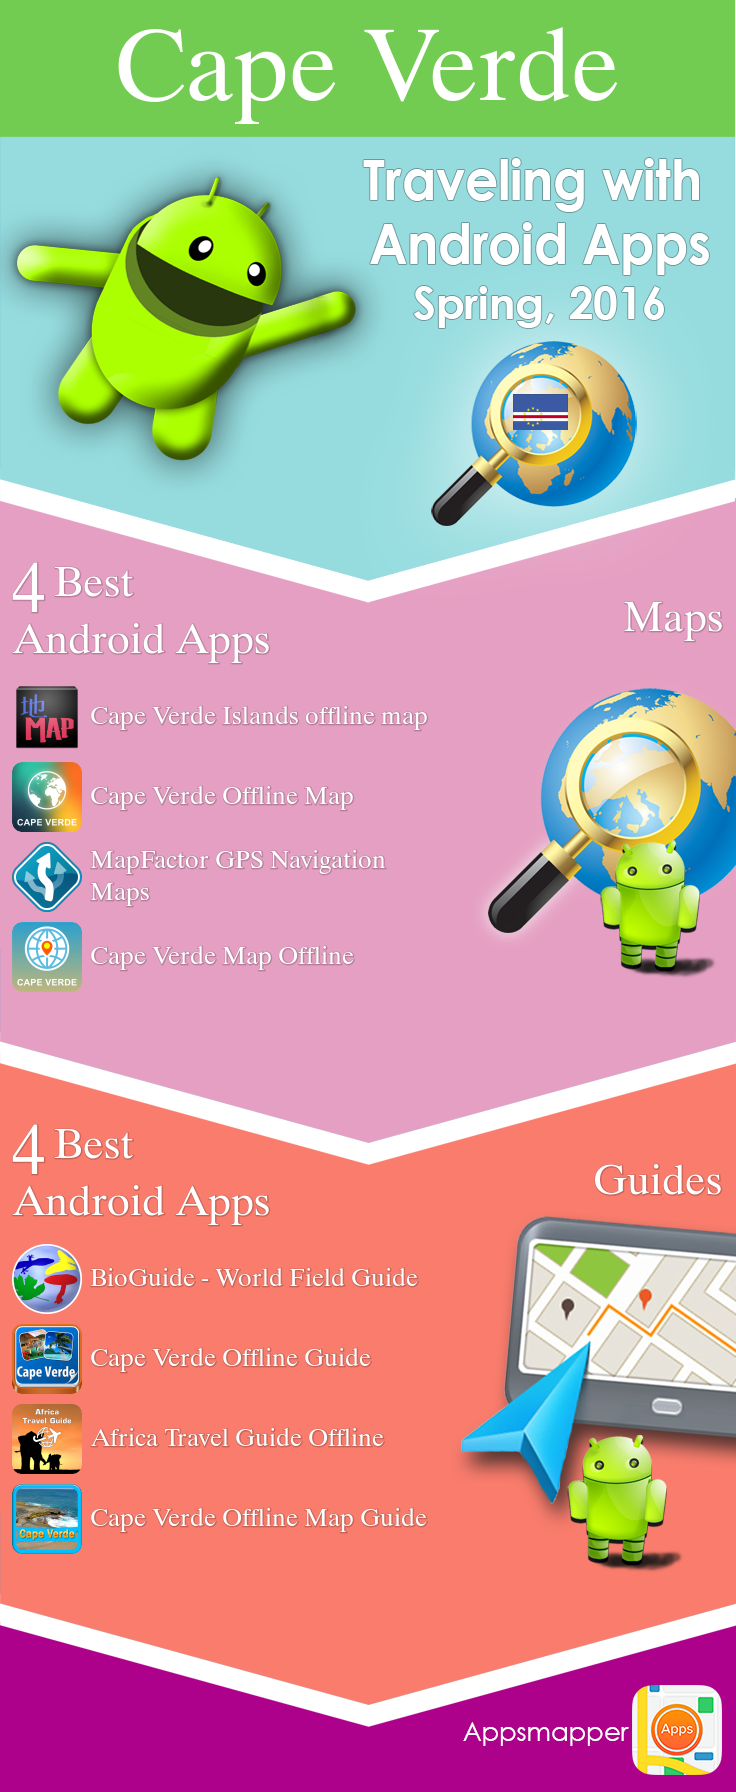 Cape Verde Android apps Travel Guides, Maps